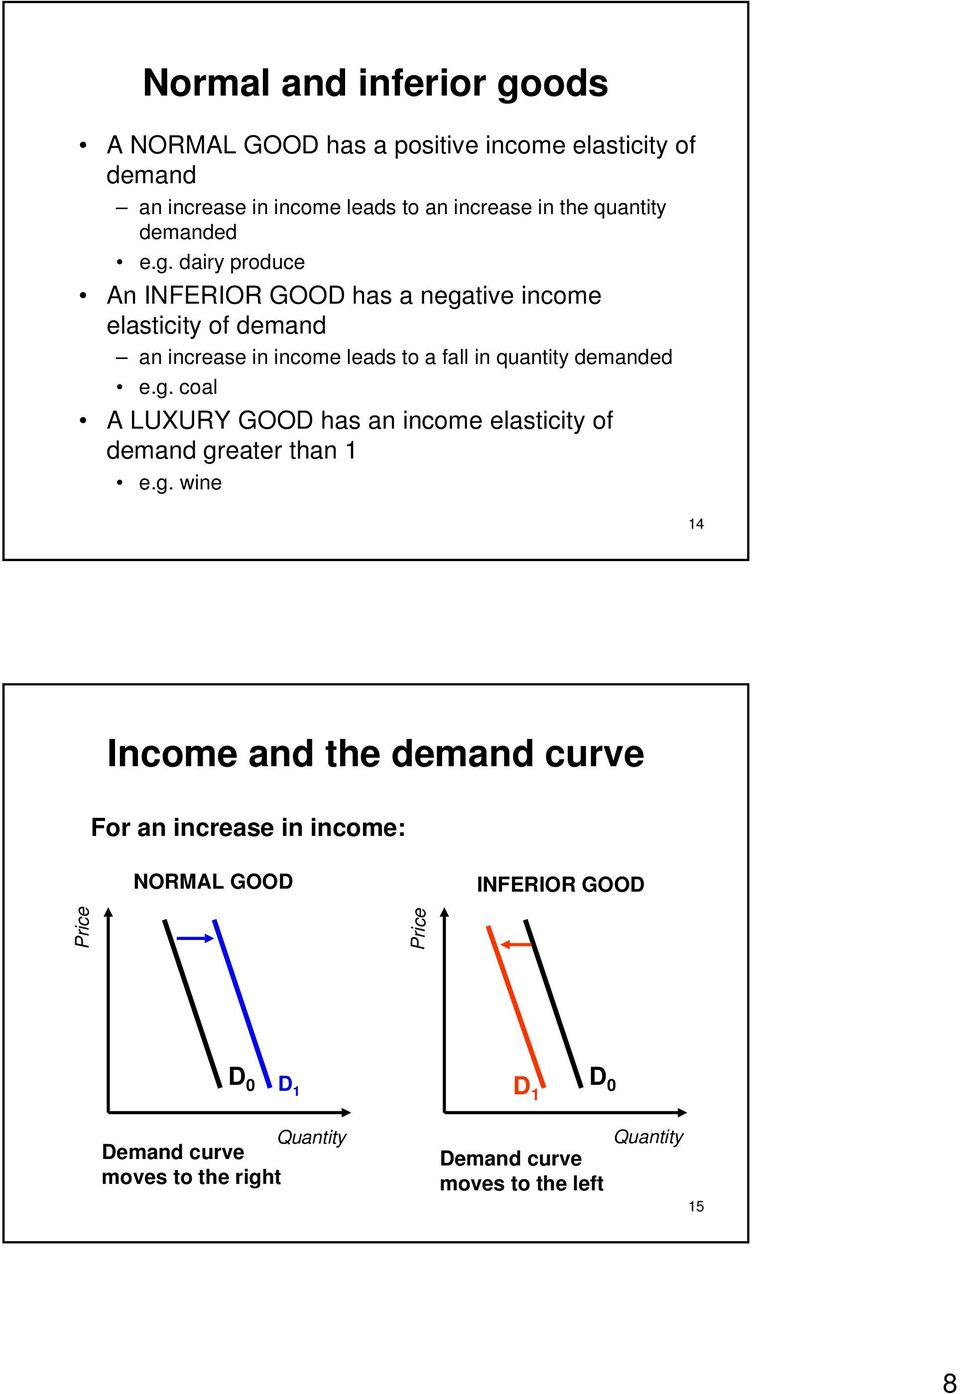 Chapter 4 Elasticities Of Demand And Supply The Price Elasticity Of Demand Pdf Free Download